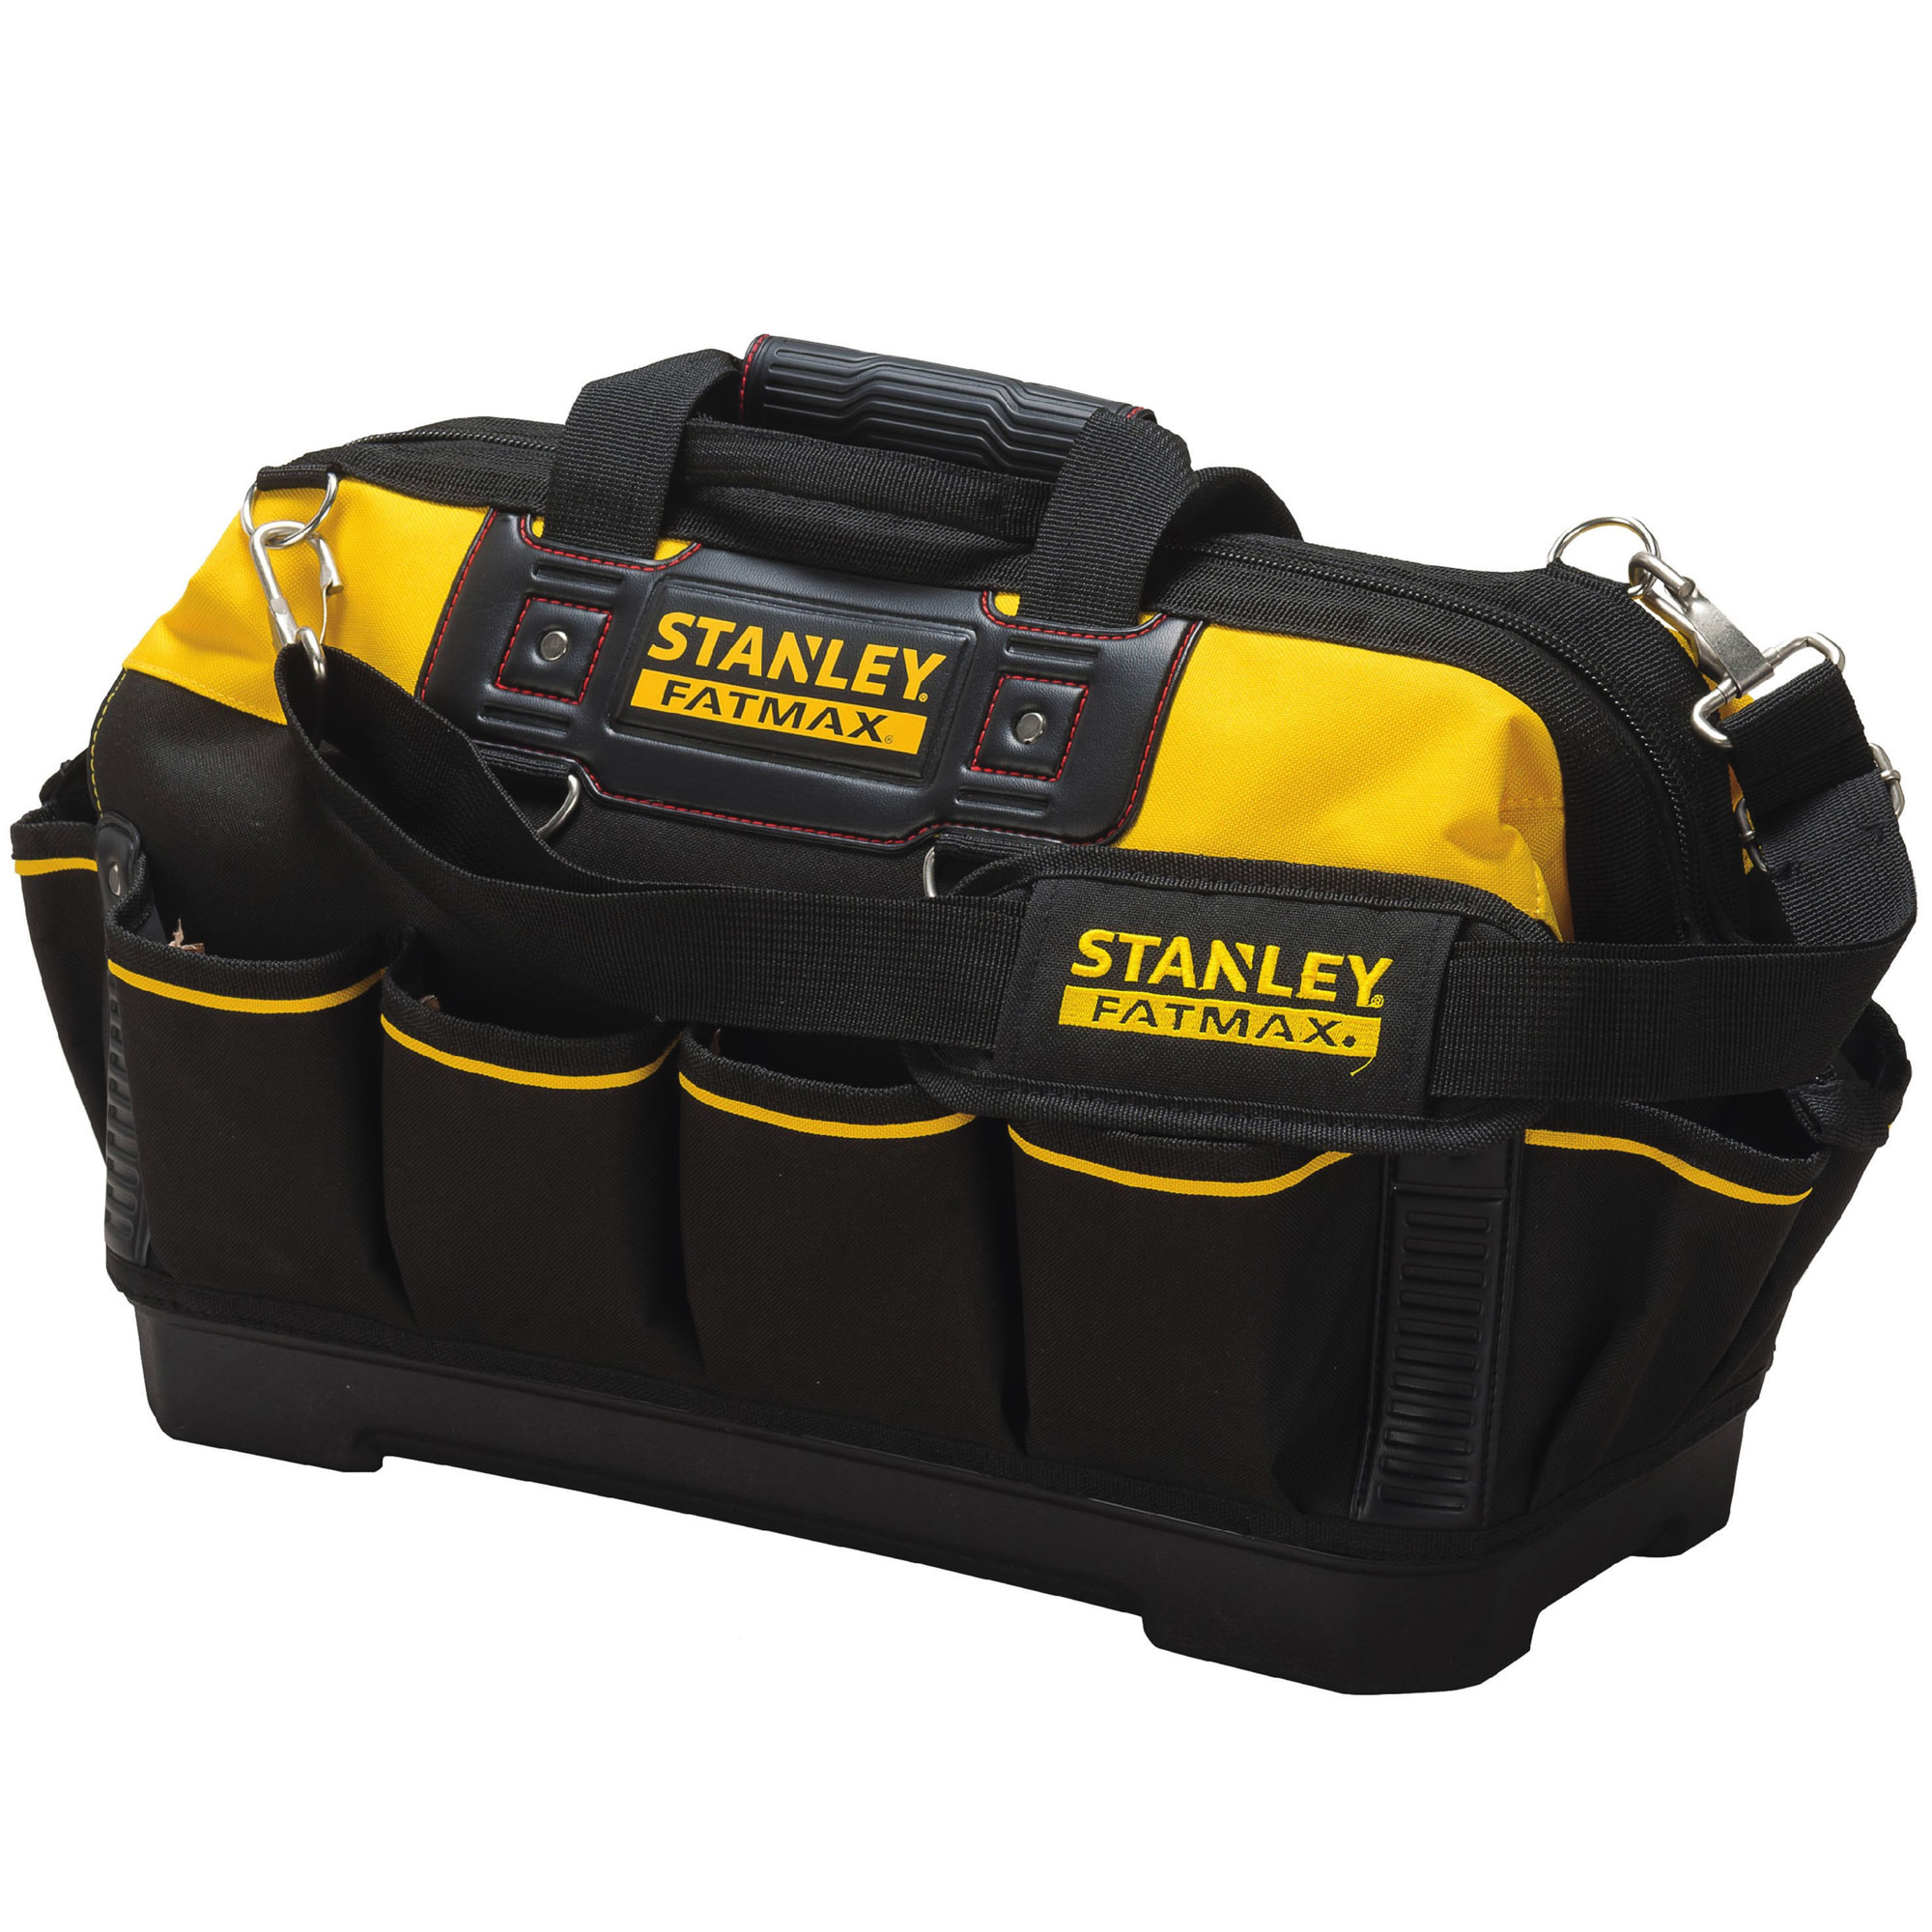 stanley 1 93 950 stanley fatmax 18 tool bag. Black Bedroom Furniture Sets. Home Design Ideas